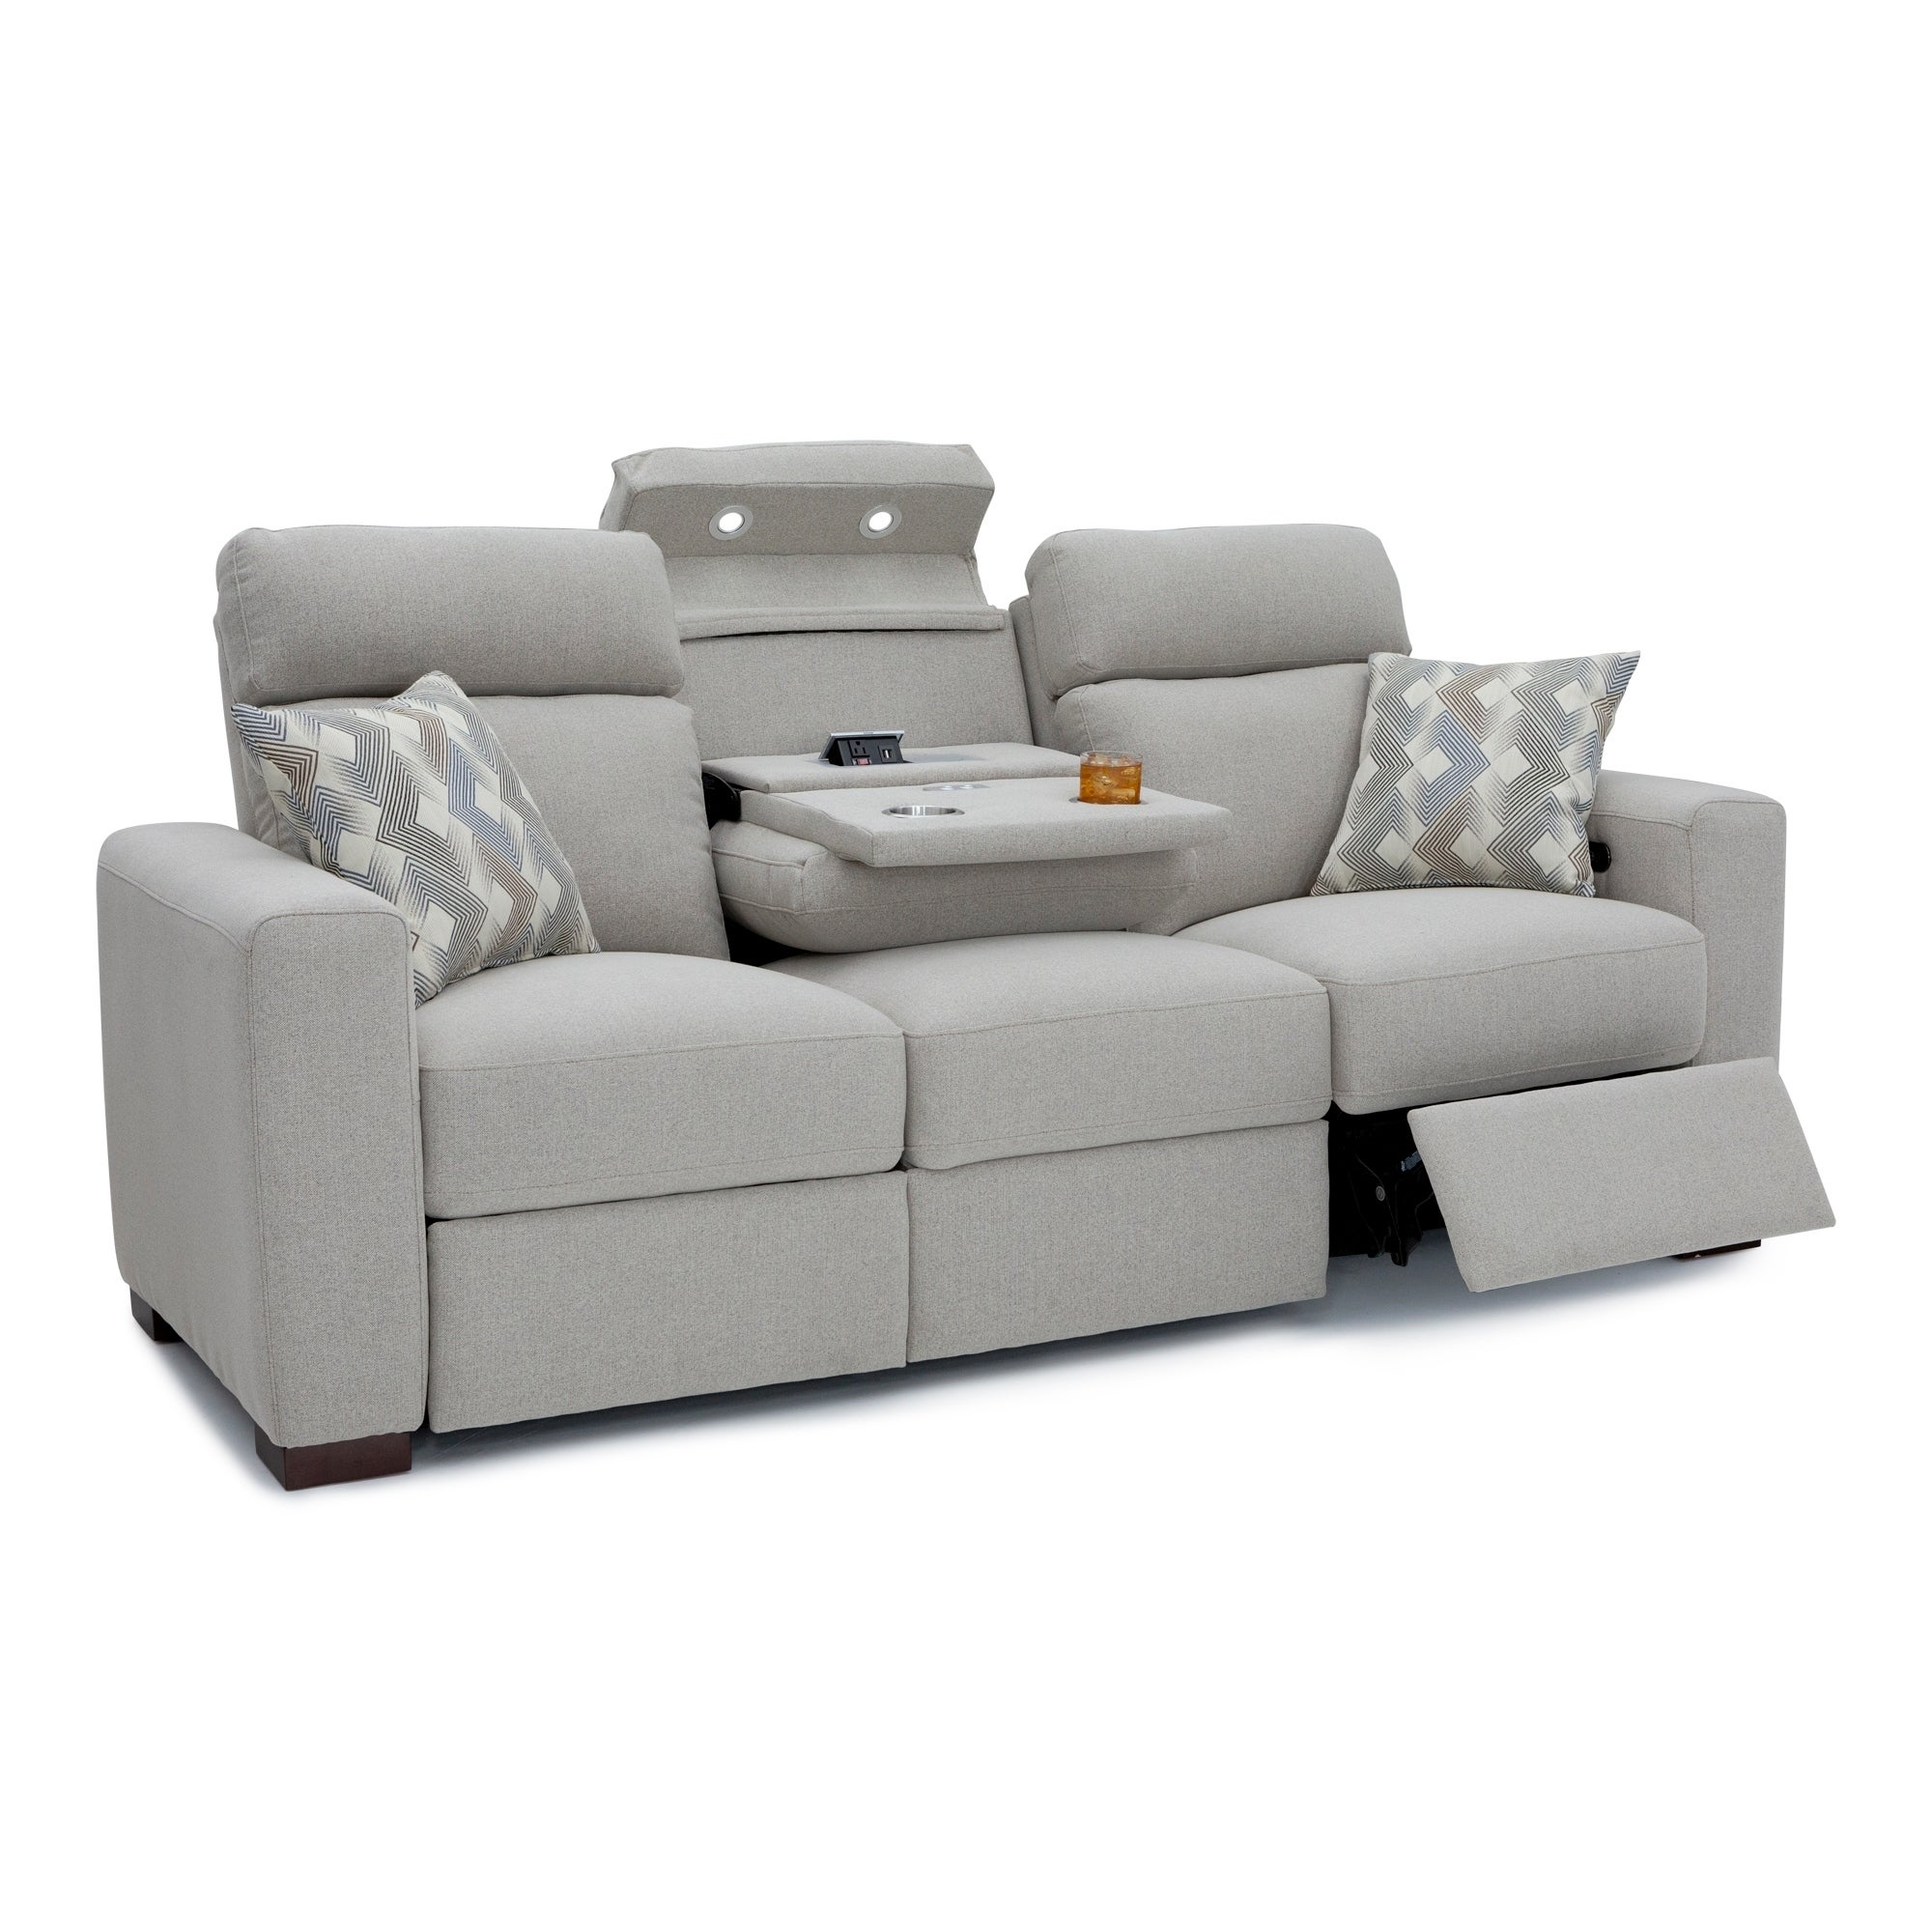 Remarkable Buy Power Recline Sofas Couches Online At Overstock Our Short Links Chair Design For Home Short Linksinfo